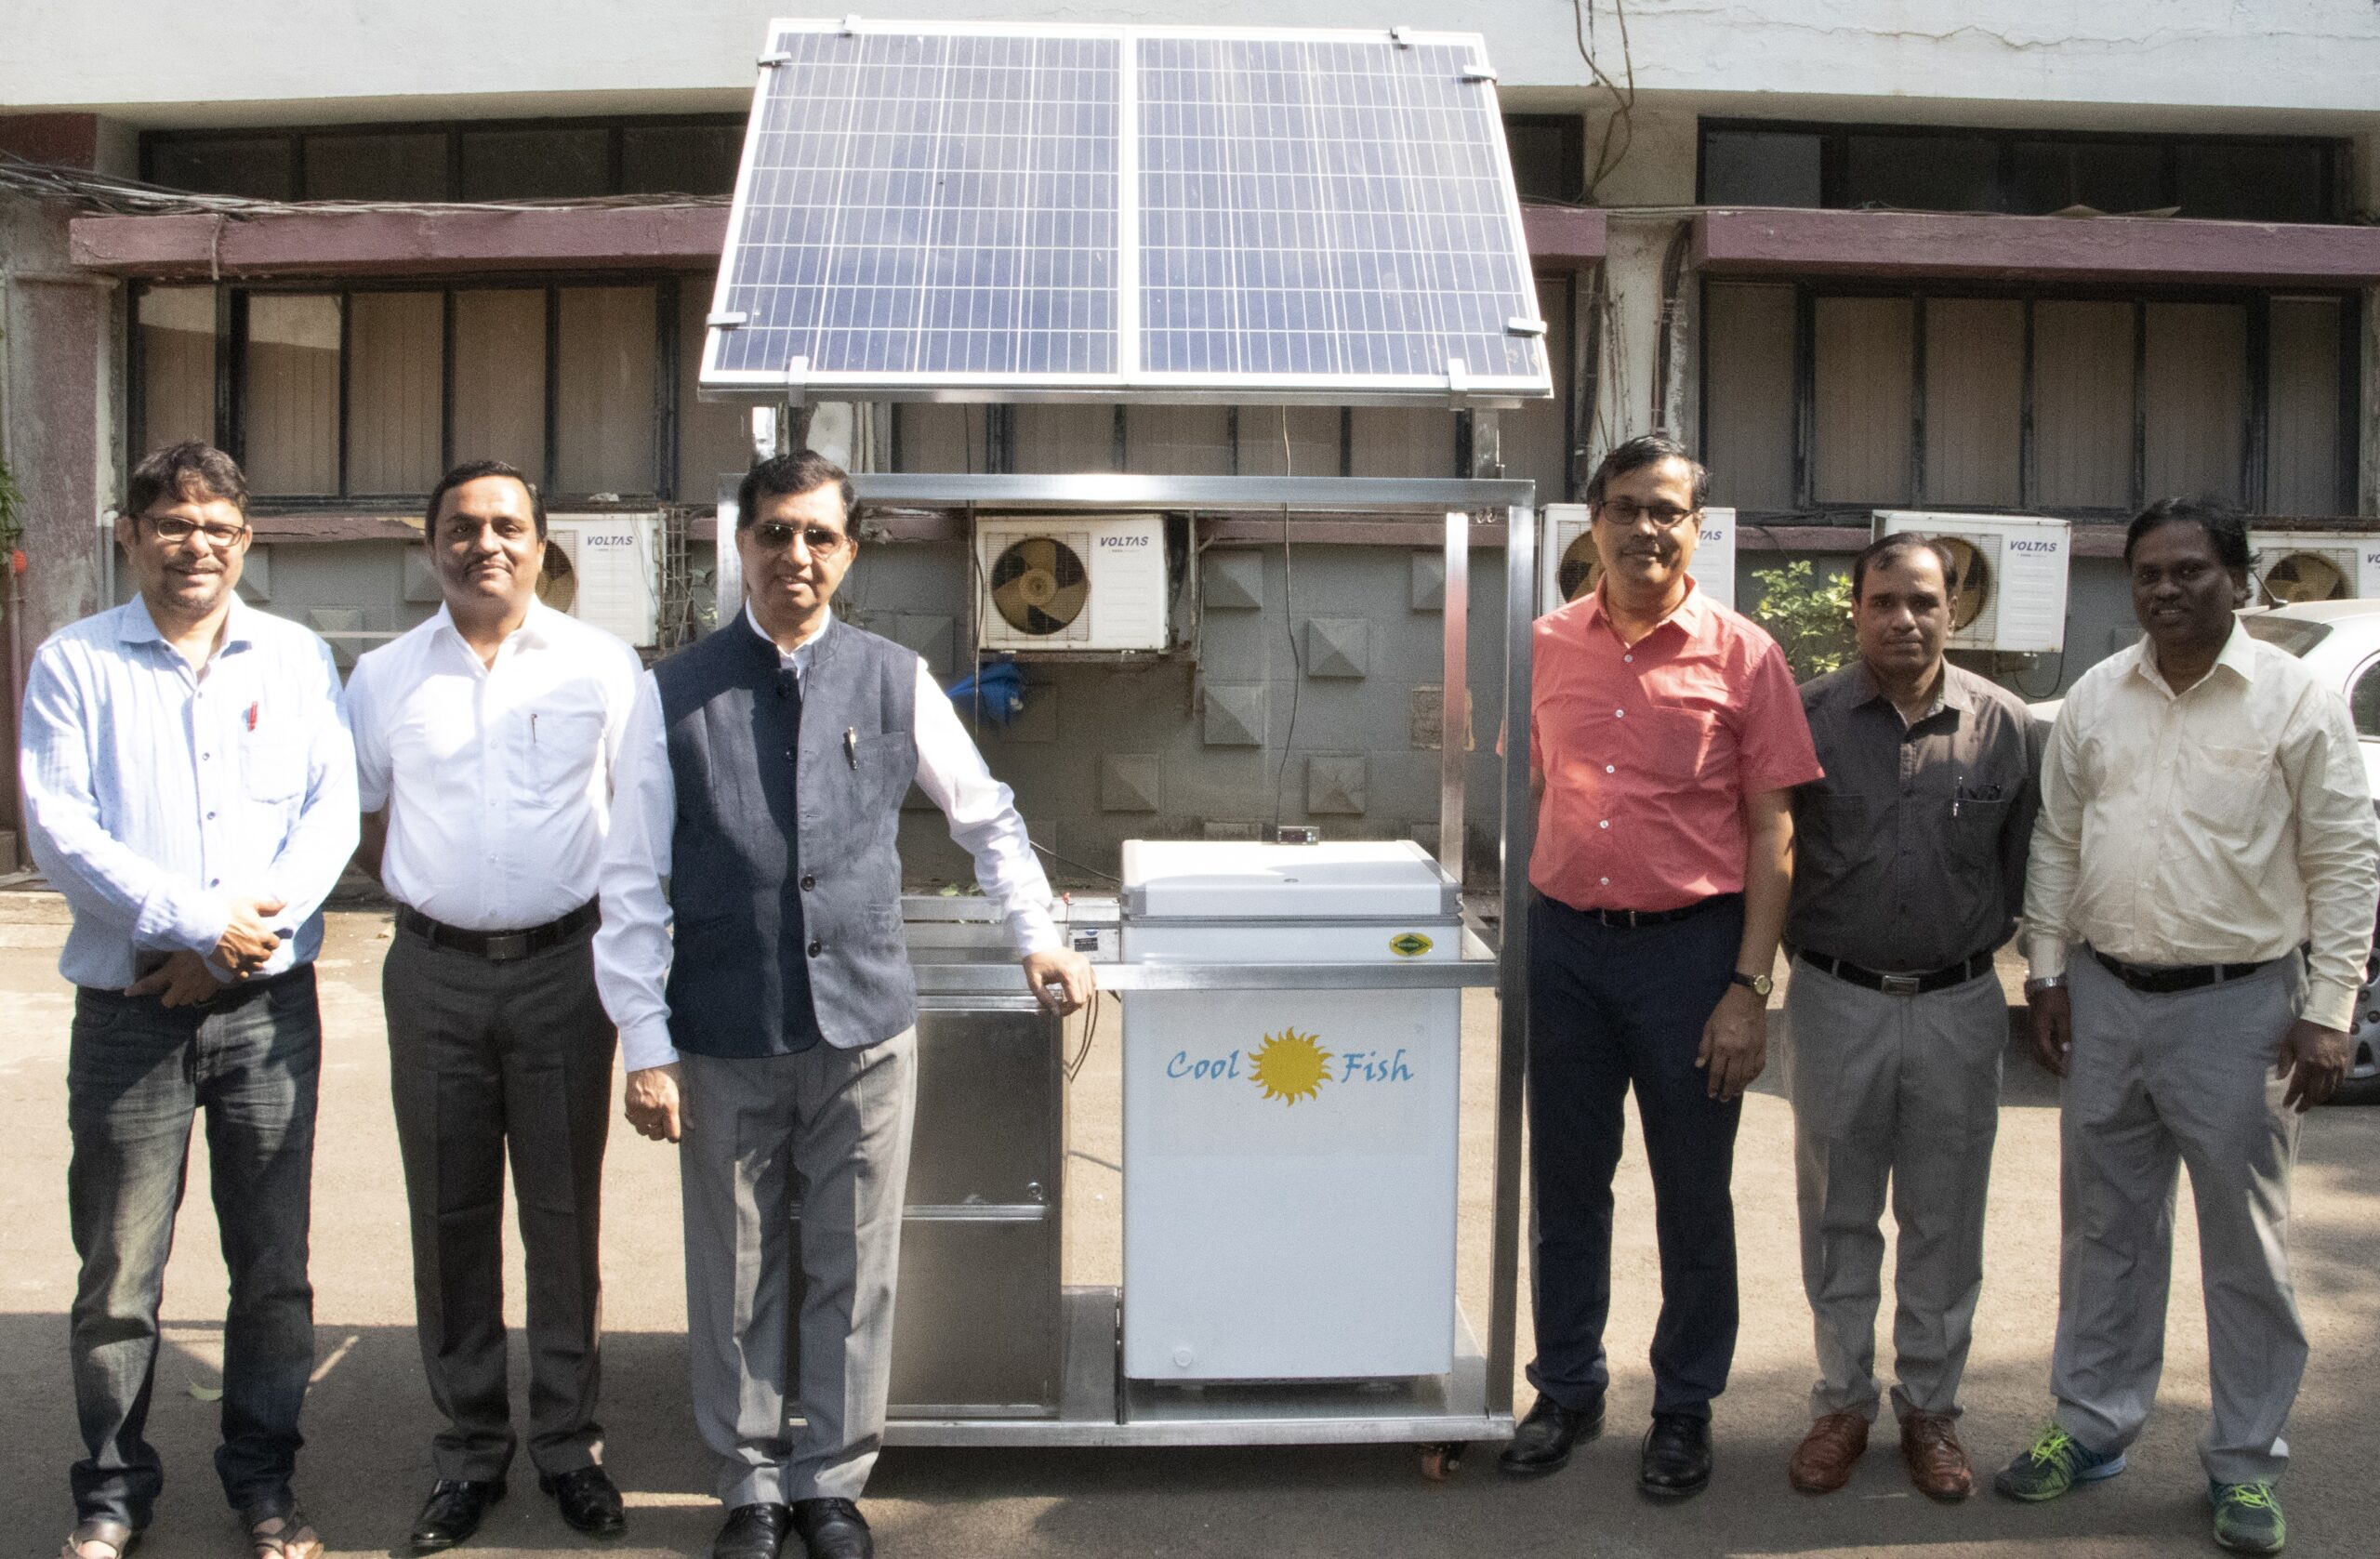 Solar-powered cooler for fish retailers